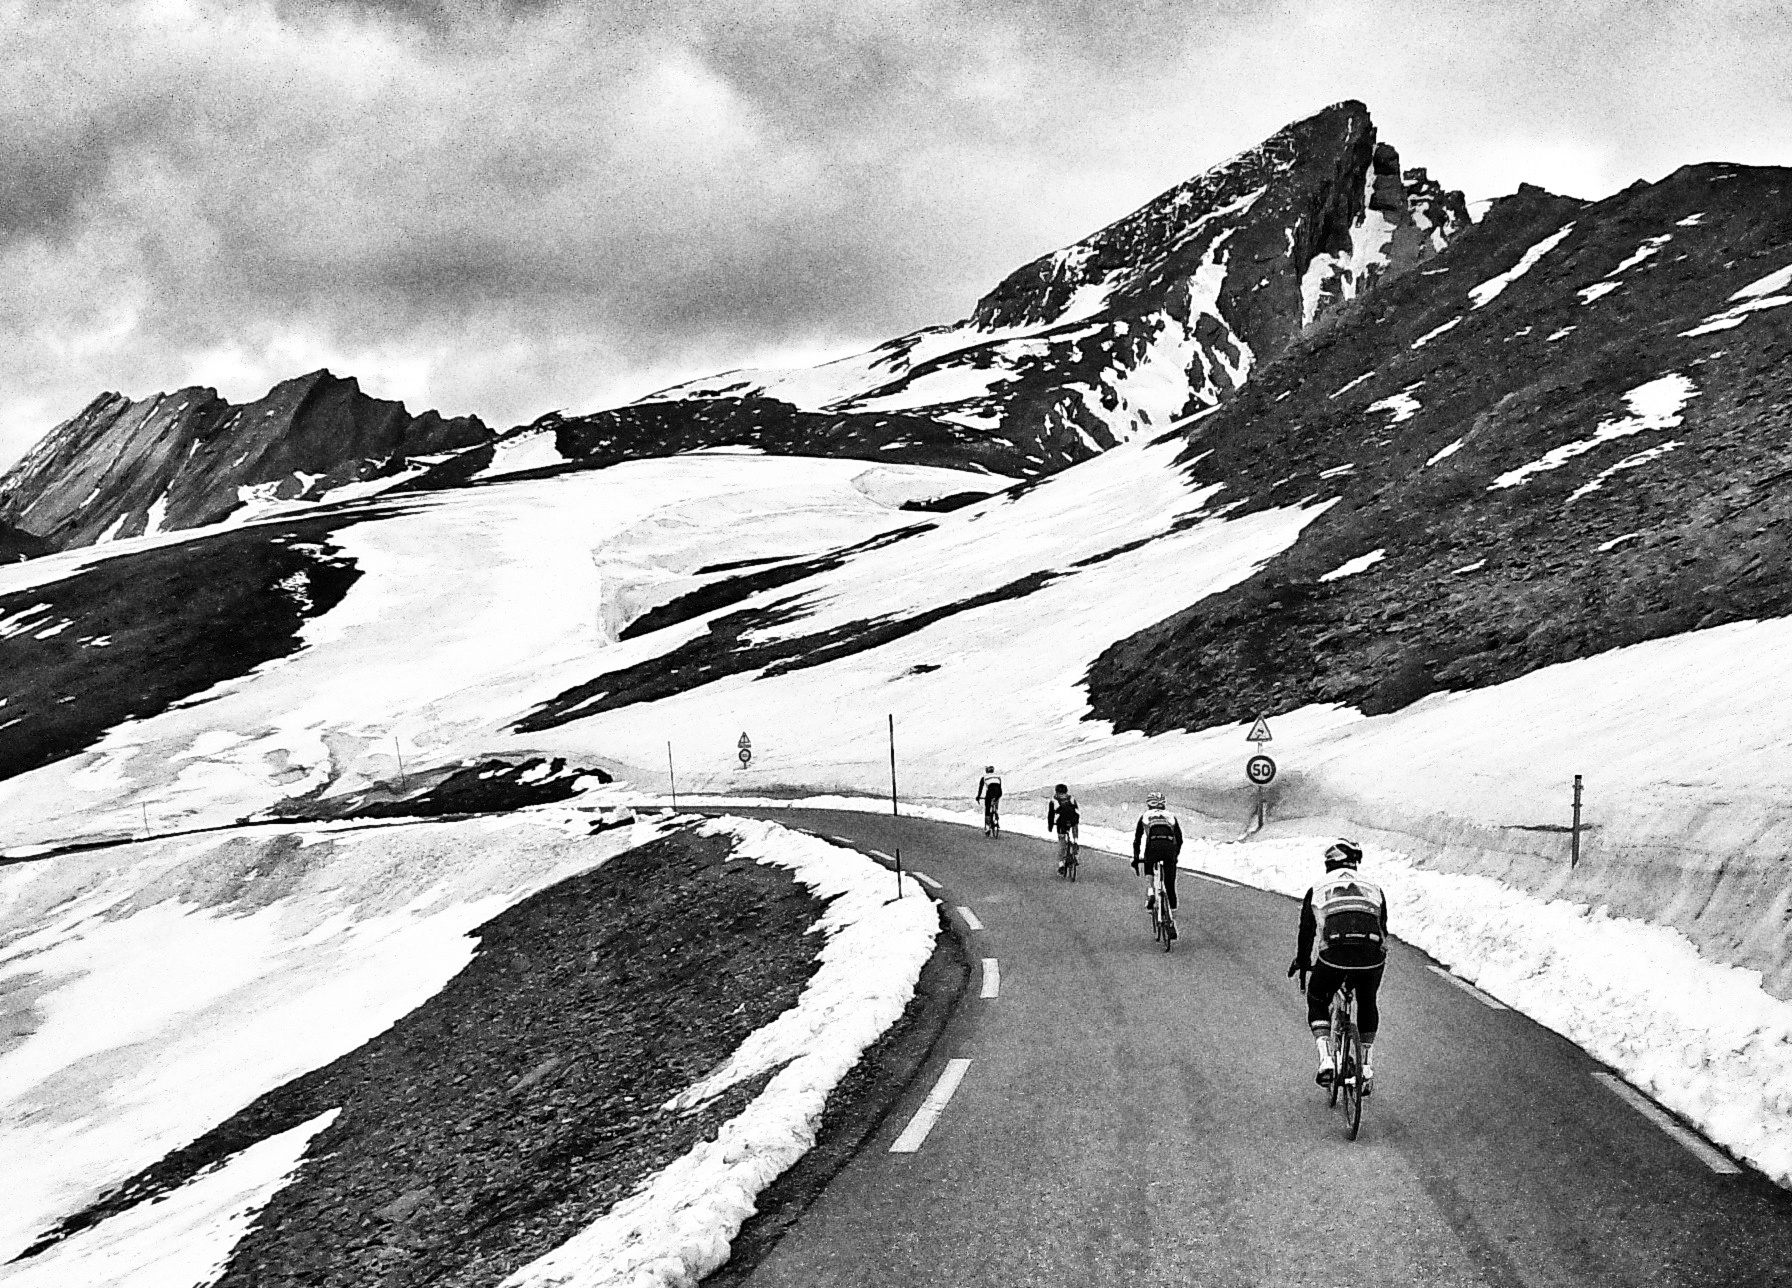 Heading down the Agnello: a Giro d'Italia was lost in one of those snow drifts, just a few days earlier!